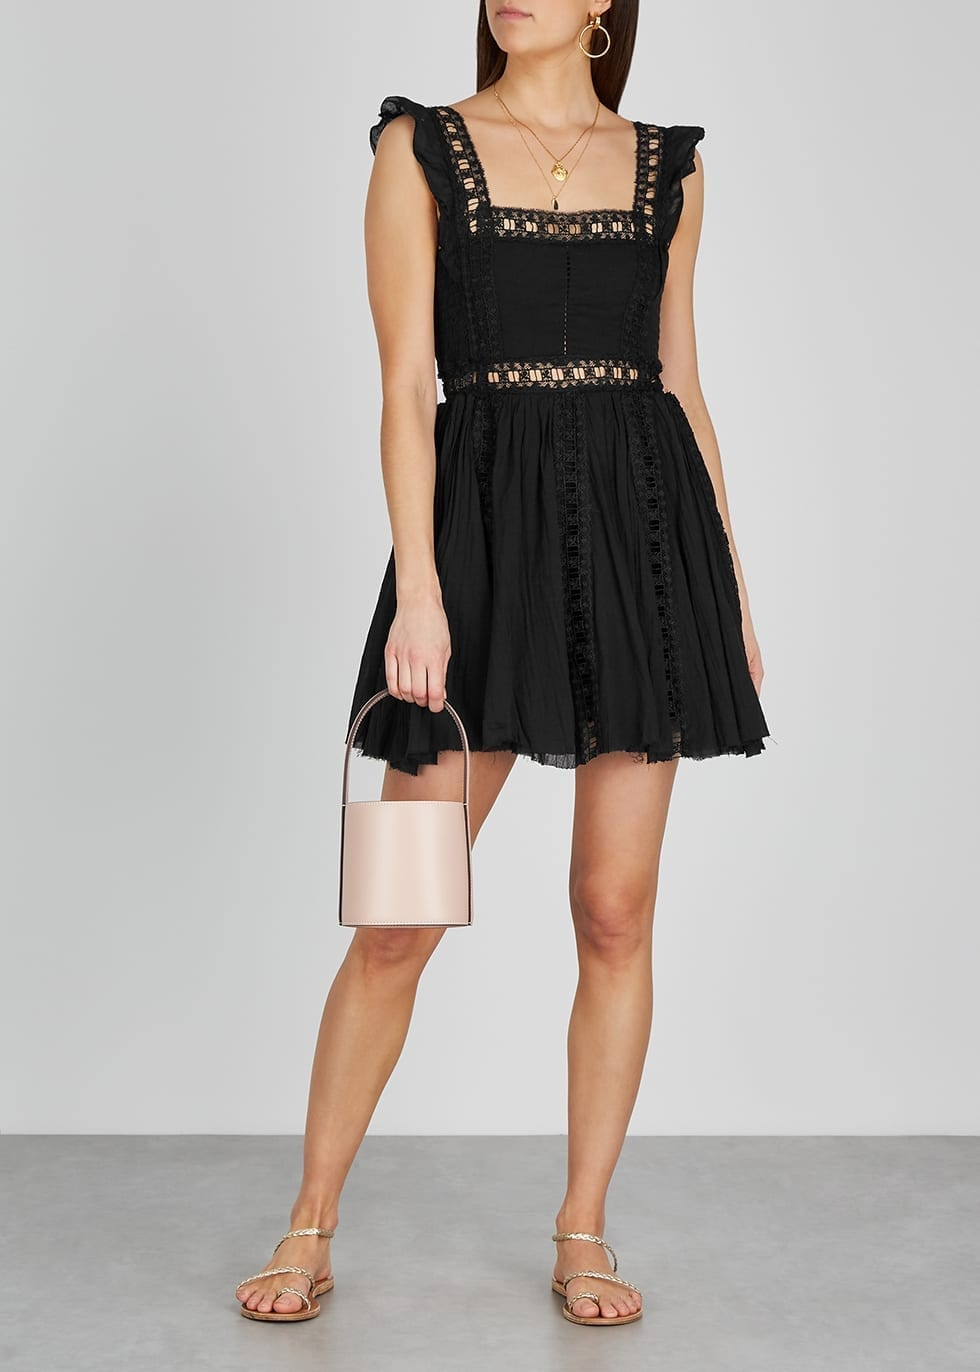 FREE PEOPLE Verona Black Cotton Mini Dress